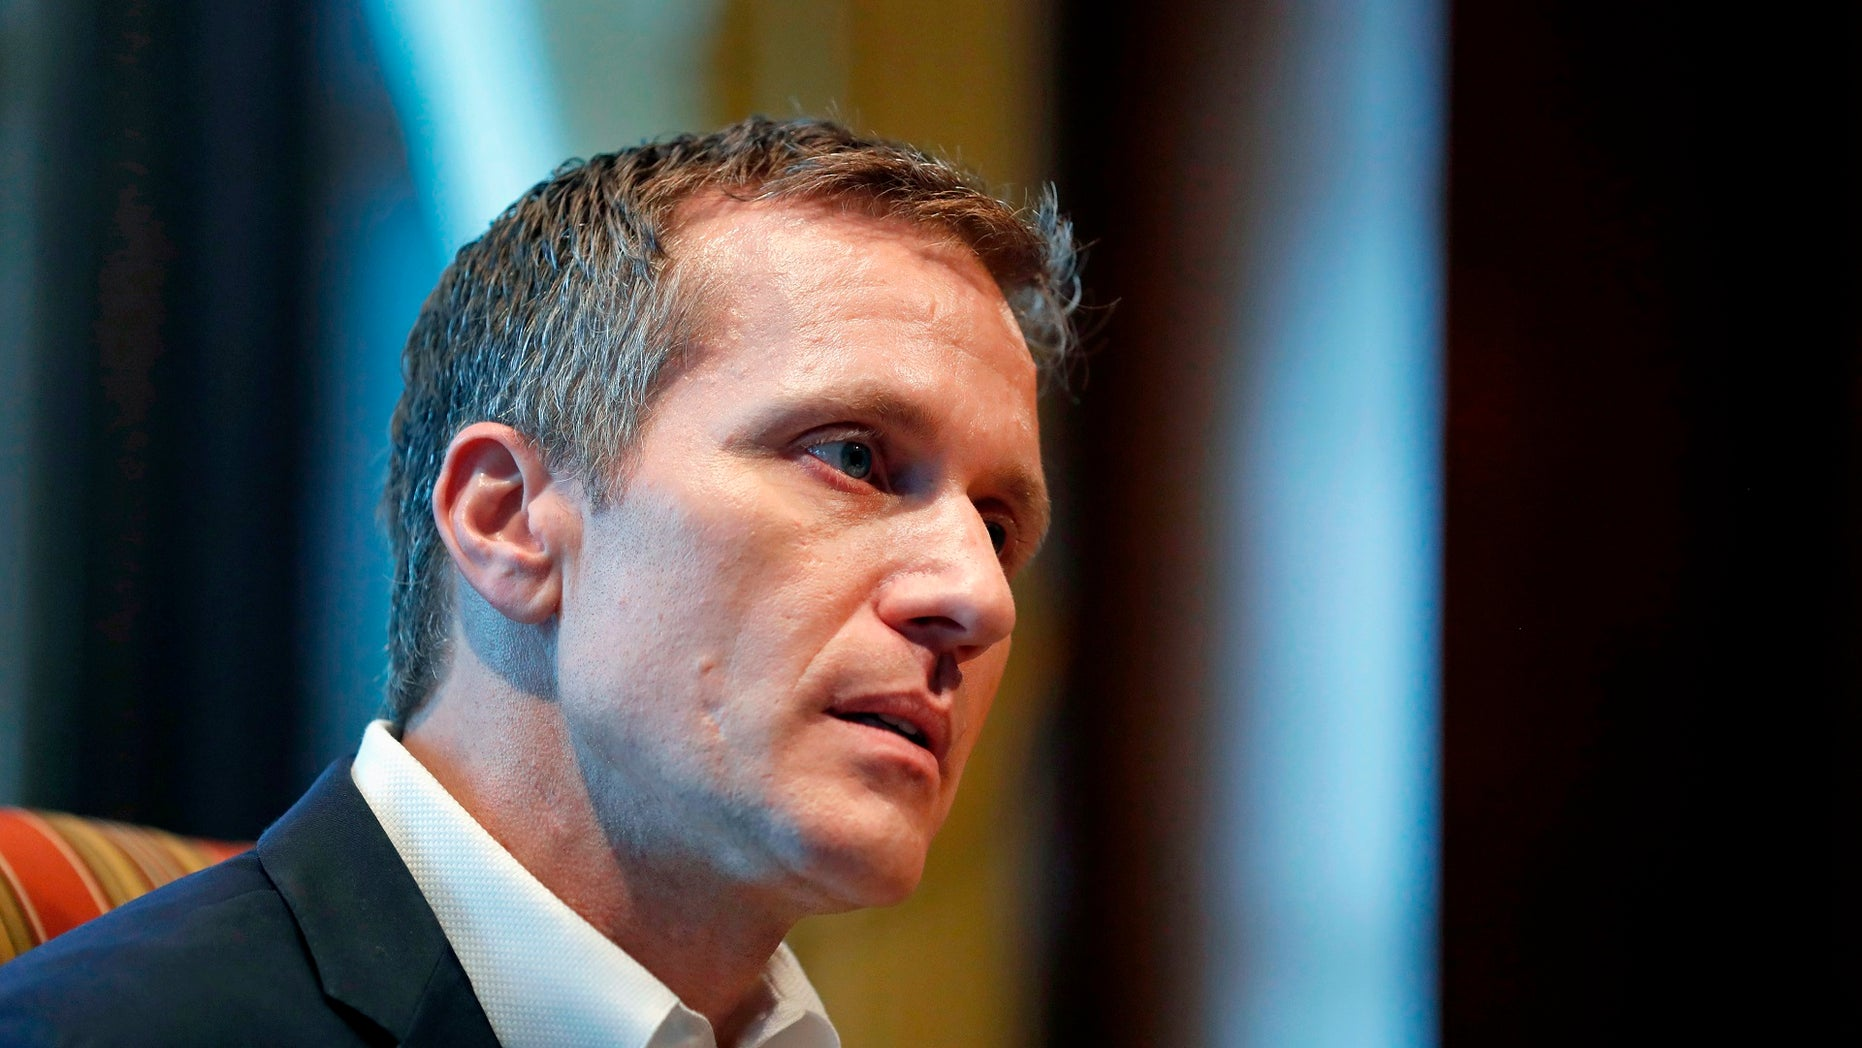 Missouri Gov. Eric Greitens is already facing trial next month on a felony invasion of privacy charge.